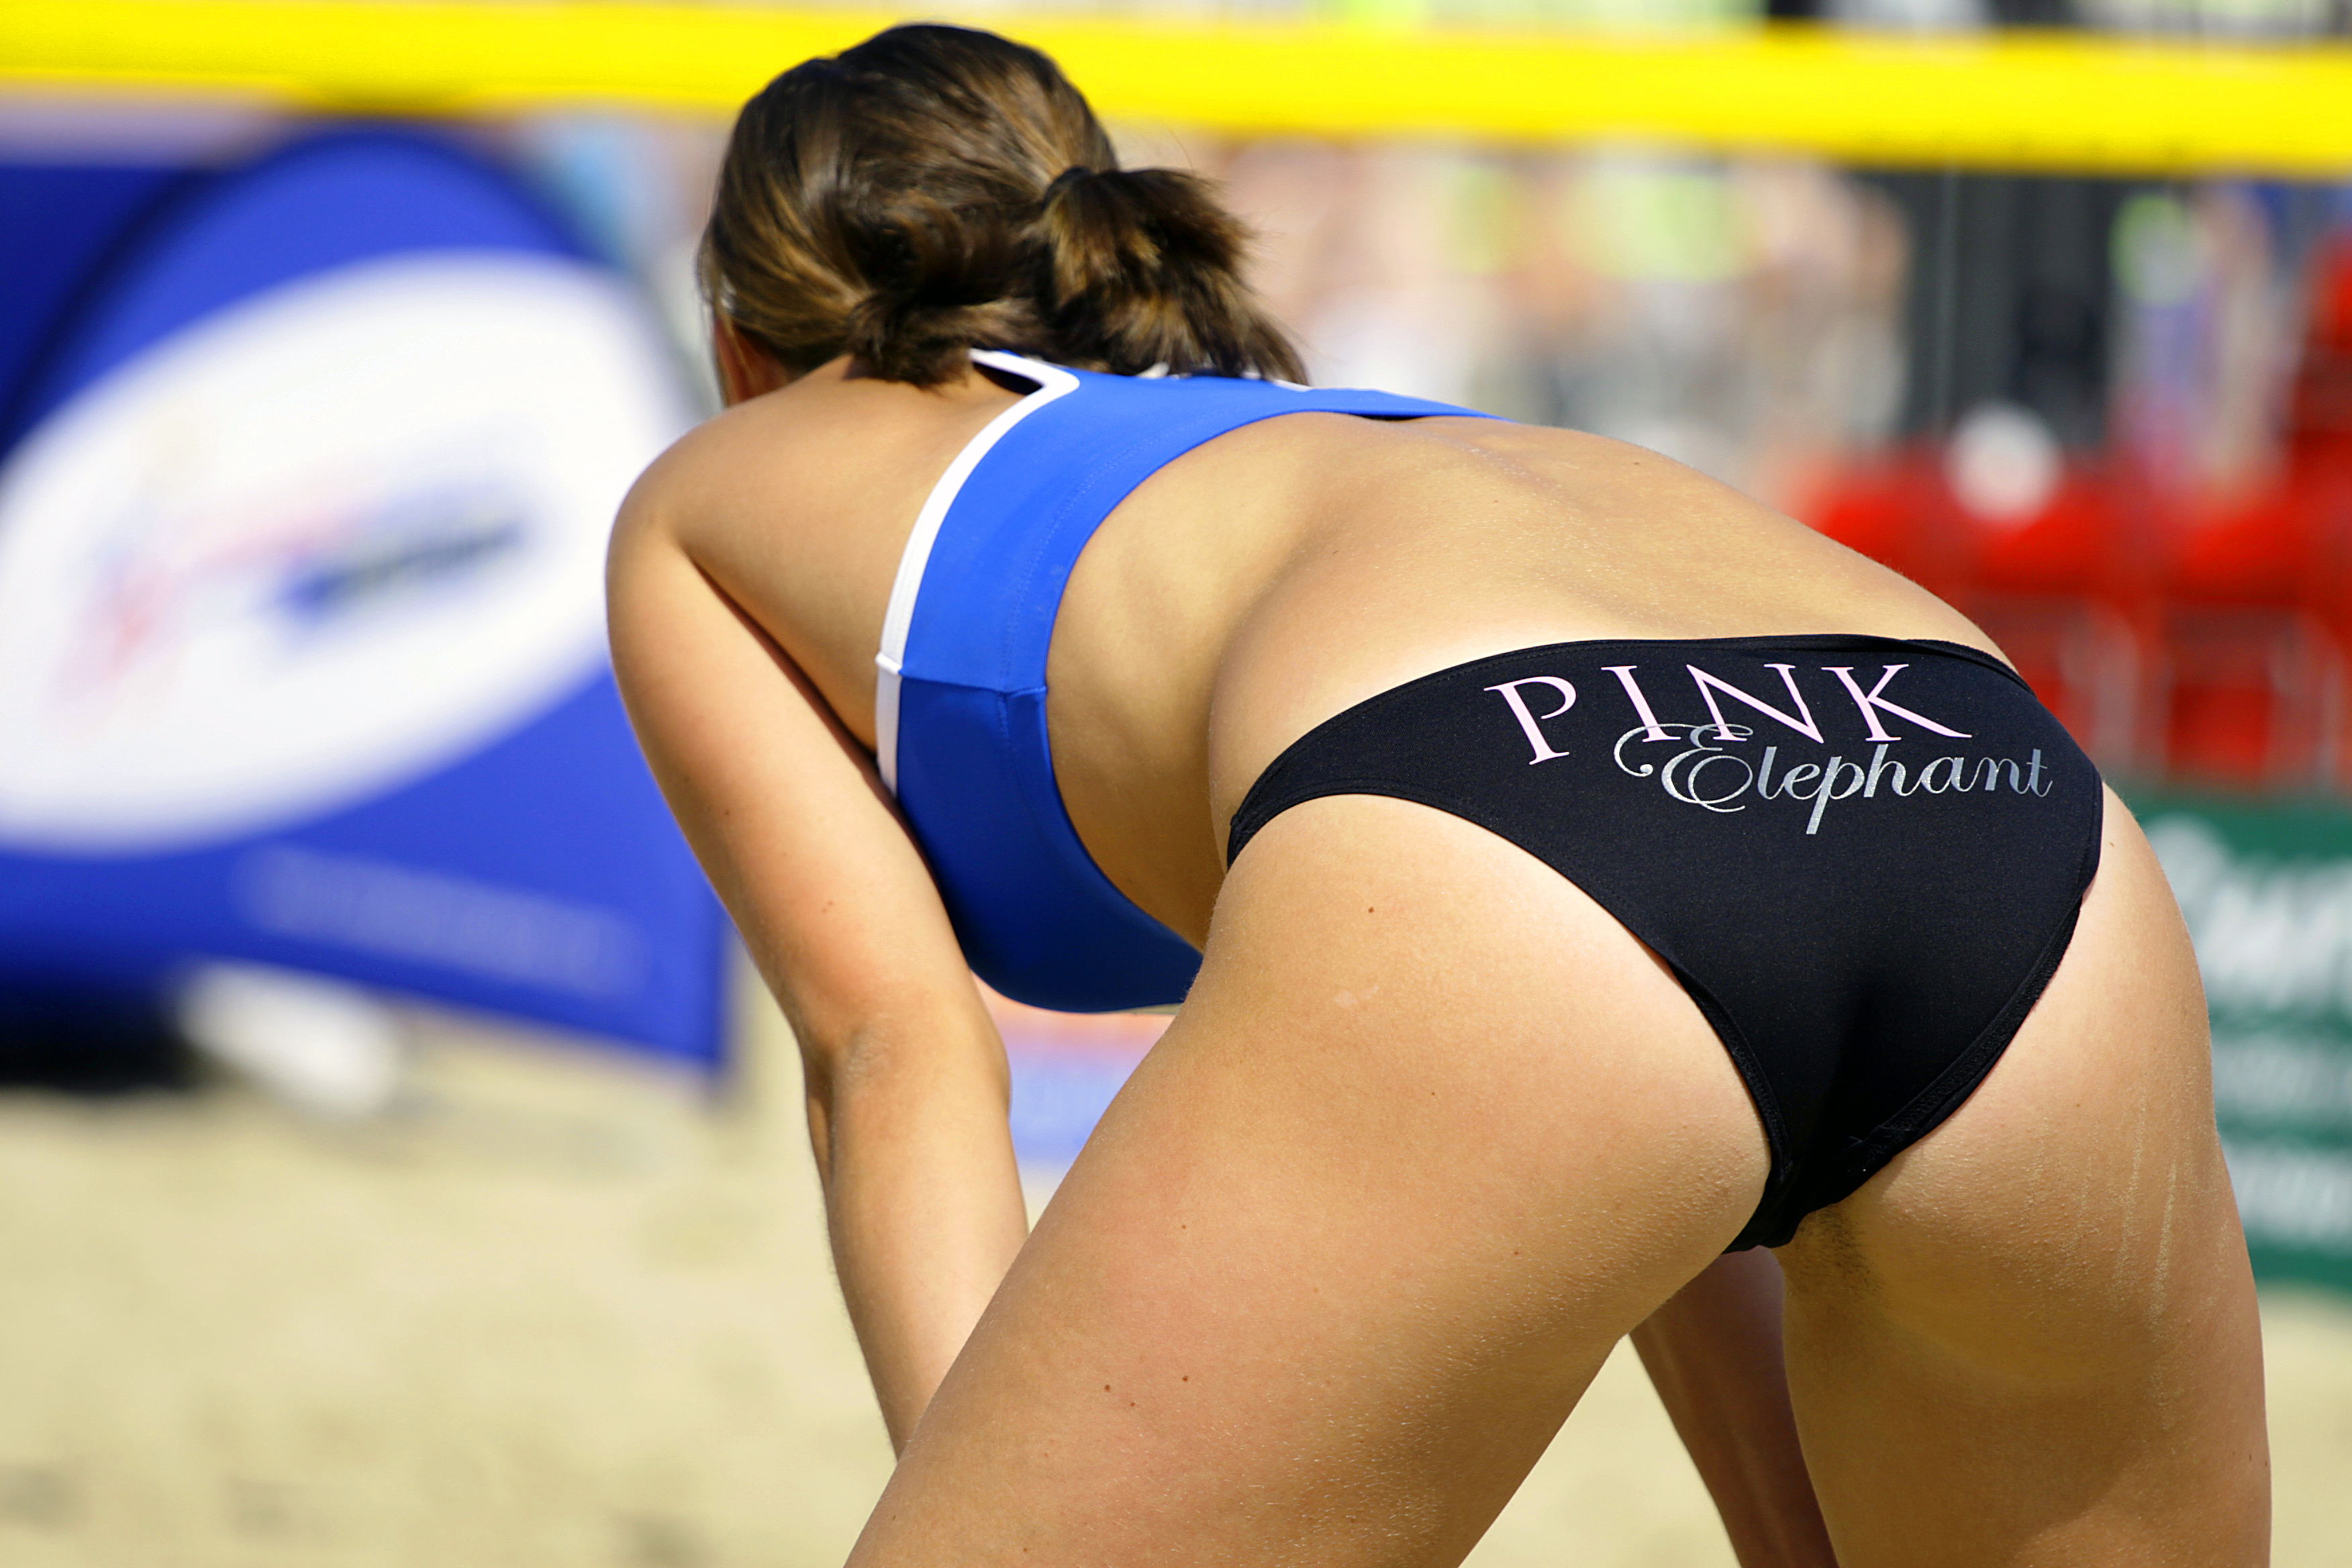 beach-erotic-picture-volleyball